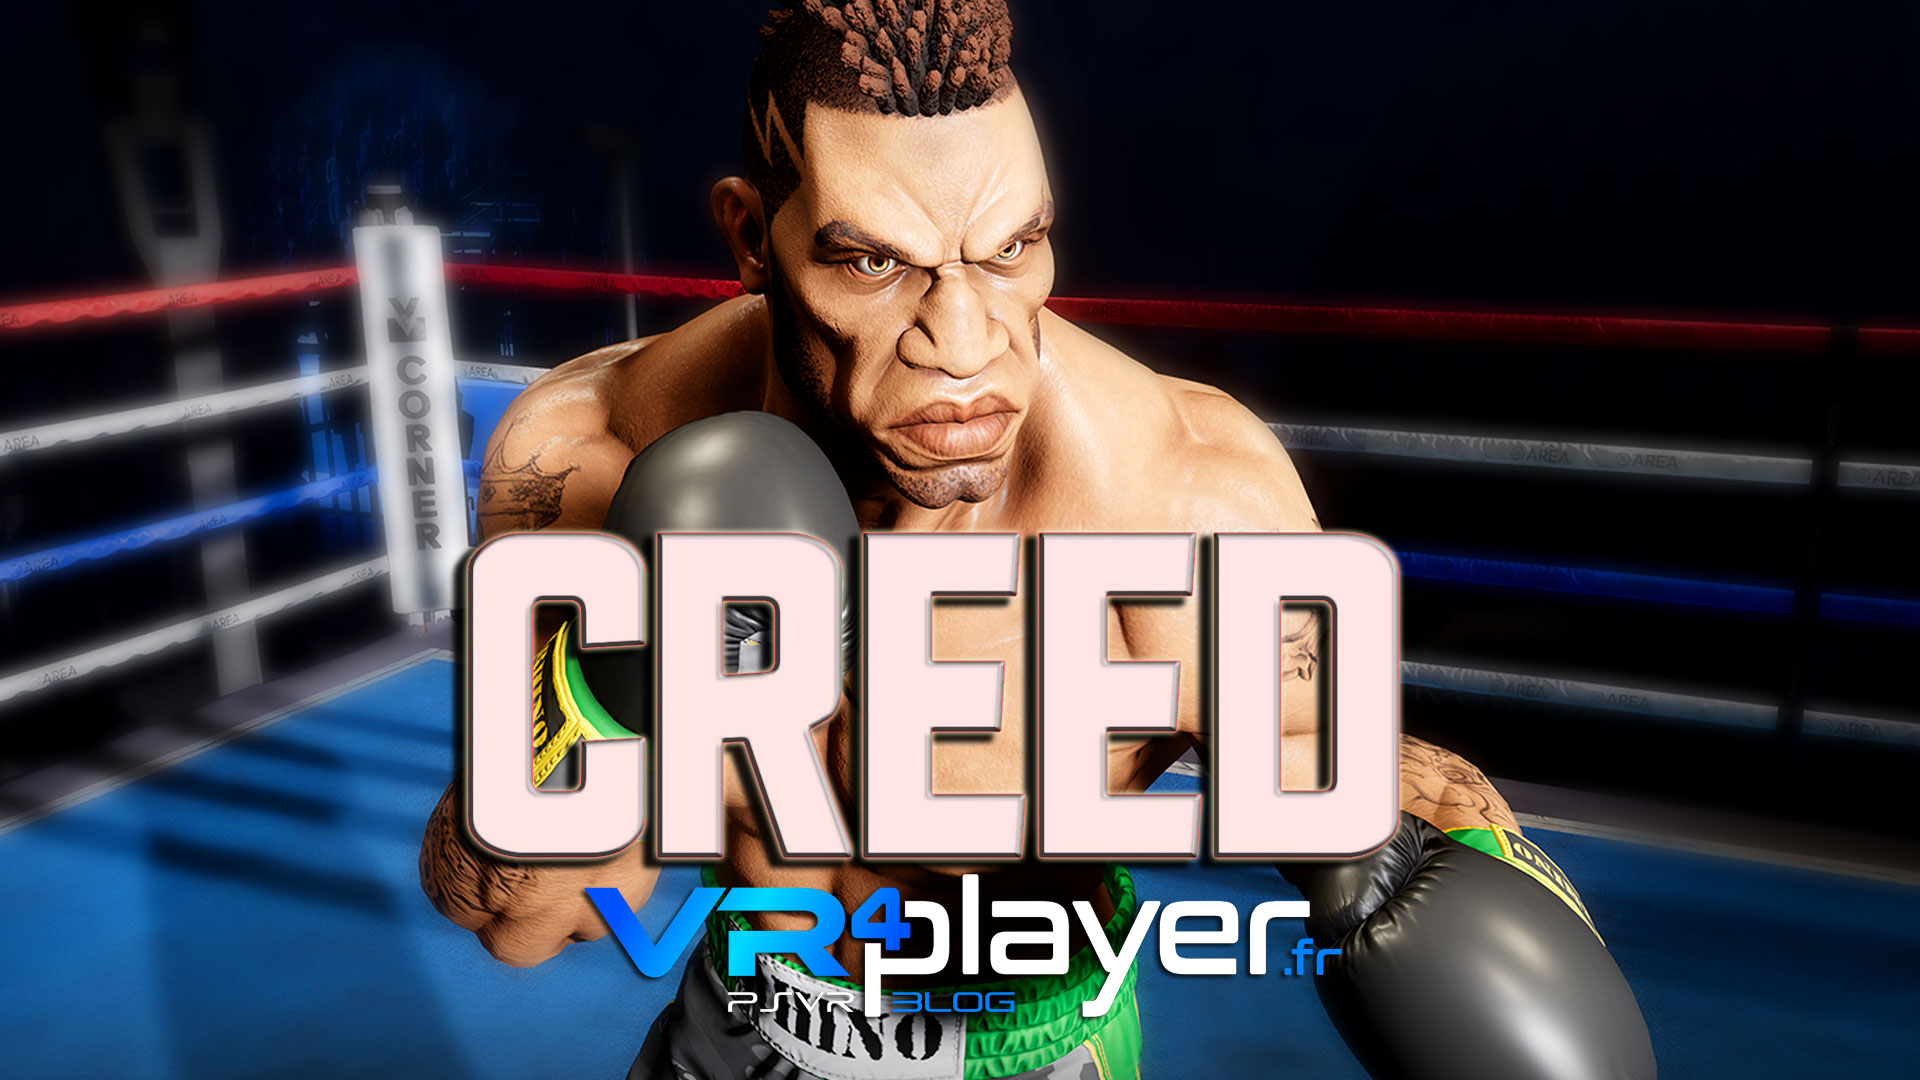 CREED Rise to Glory sur PSVR vr4player.fr